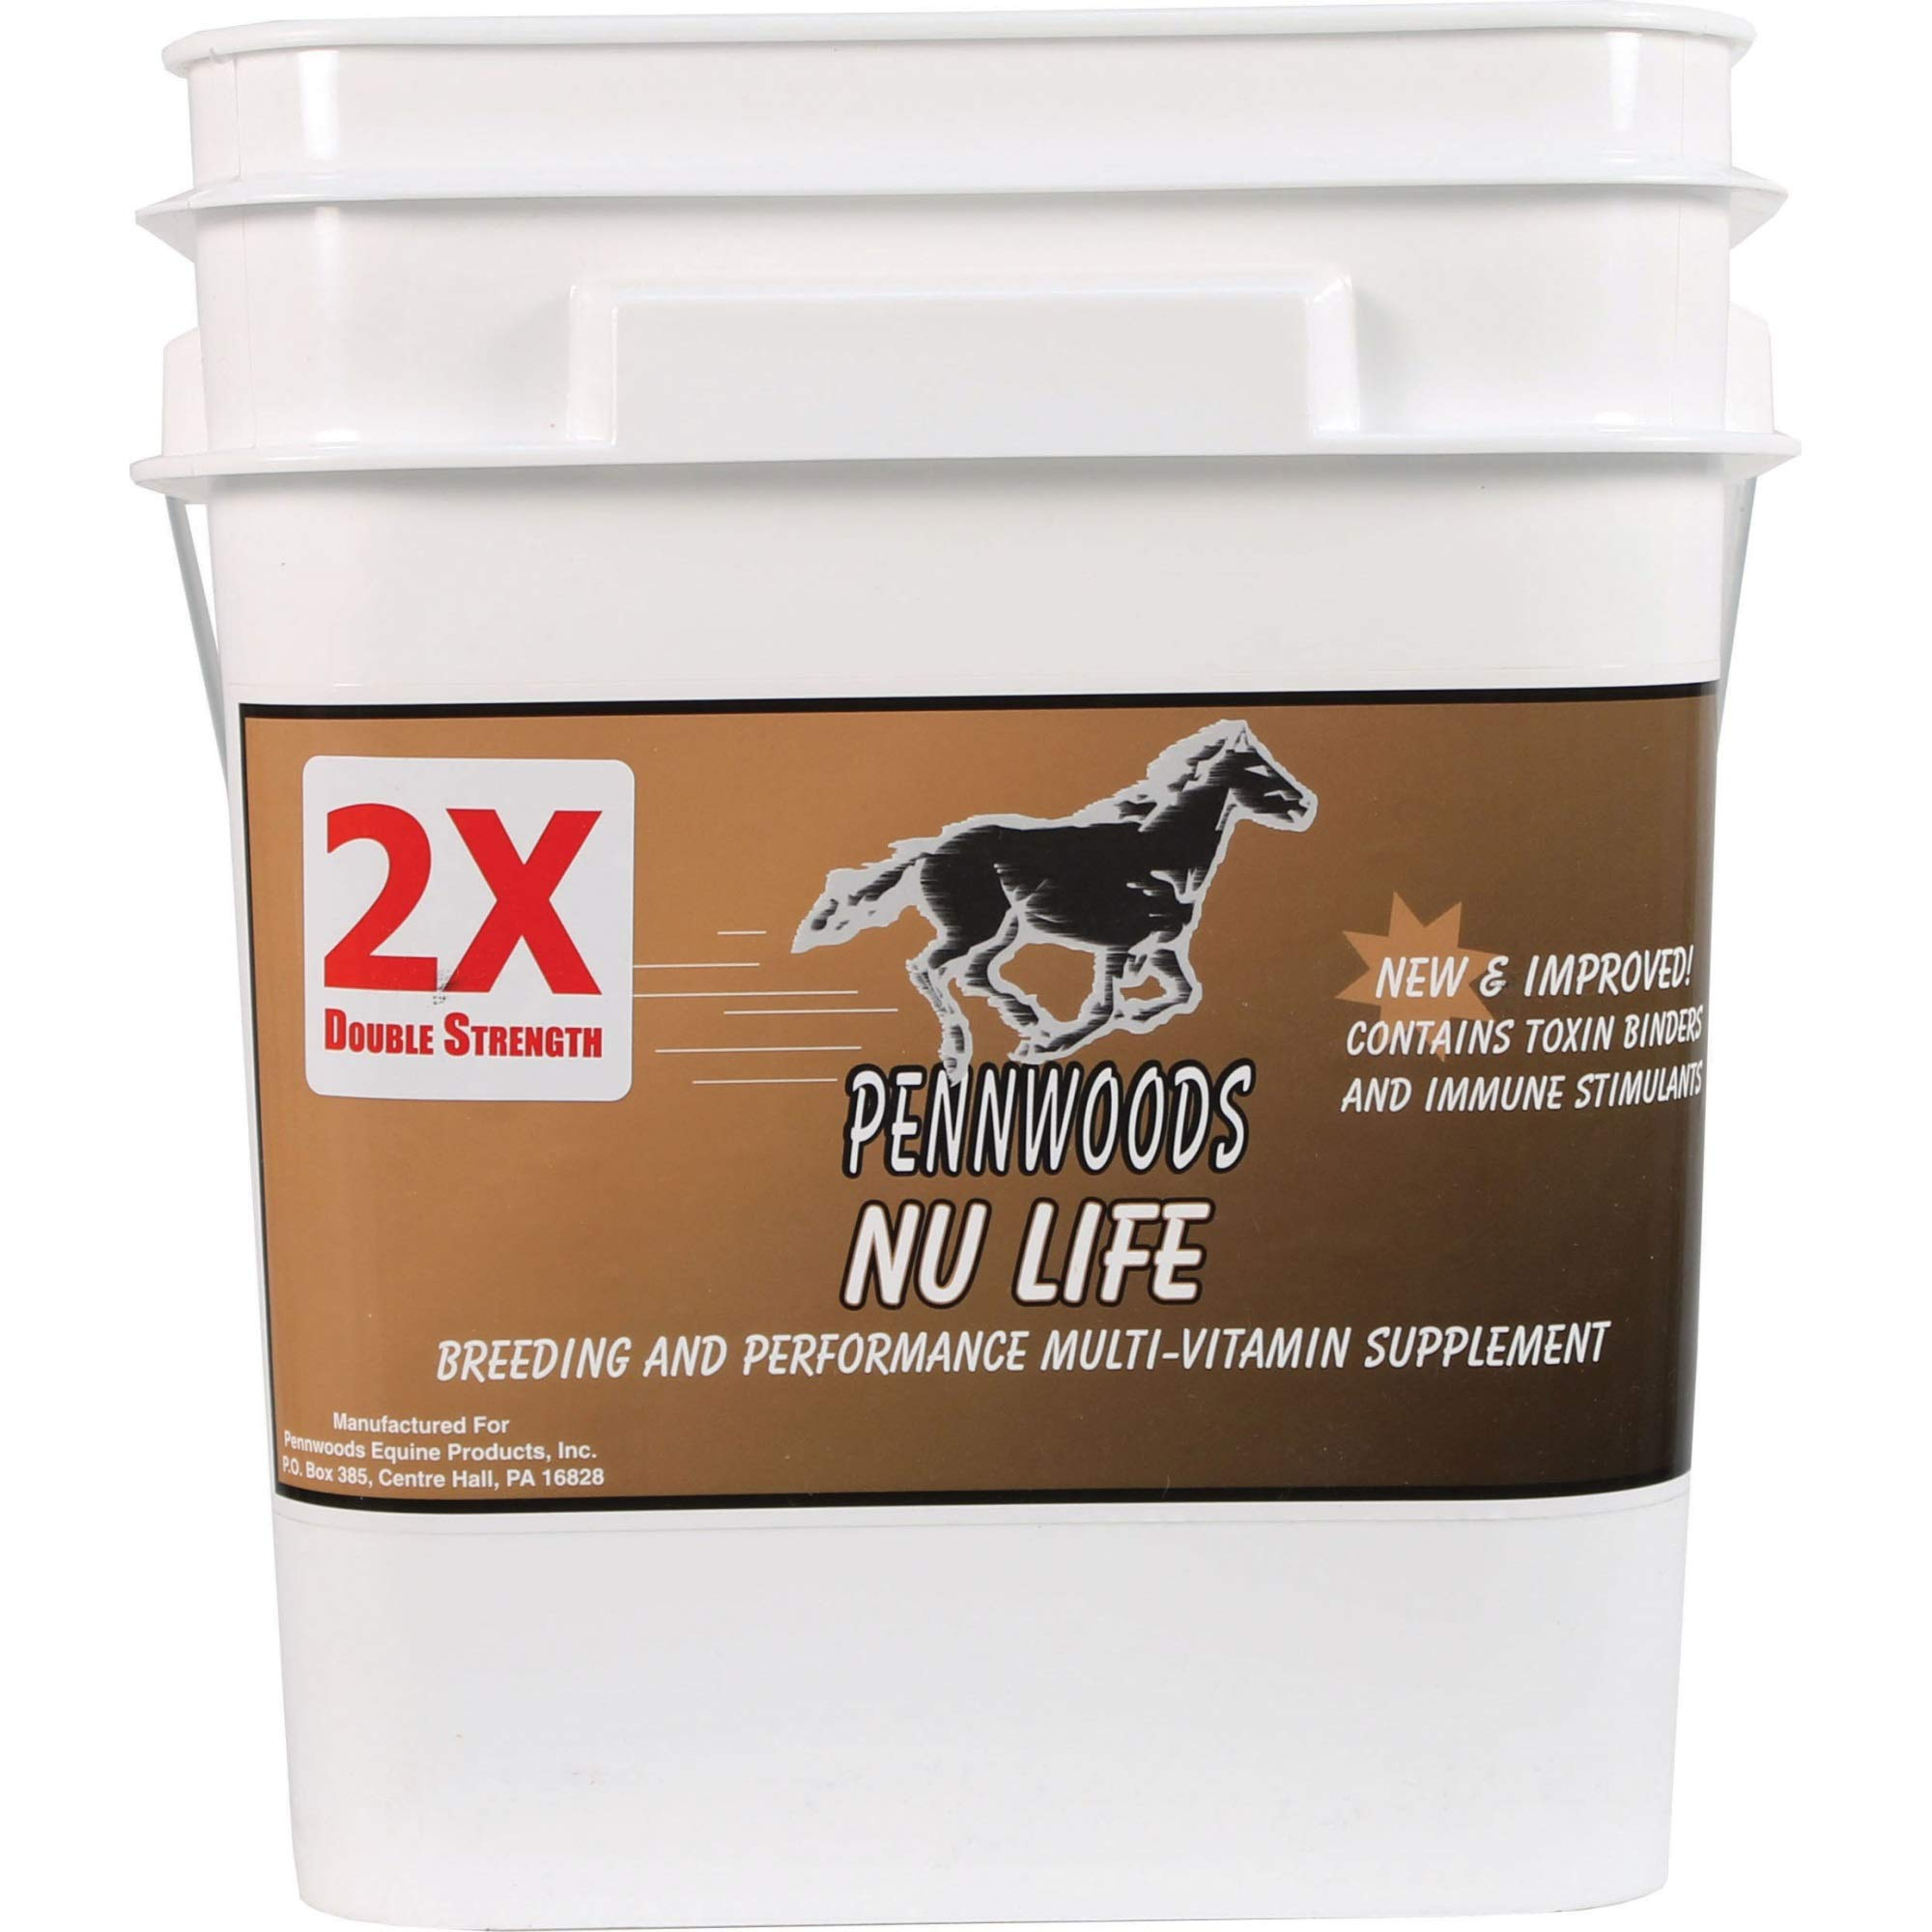 Pennwoods Equine Products 120781 Nu Life 2X Breeding & Vitamin Horse Supplement, 25 lb by Pennwoods Equine